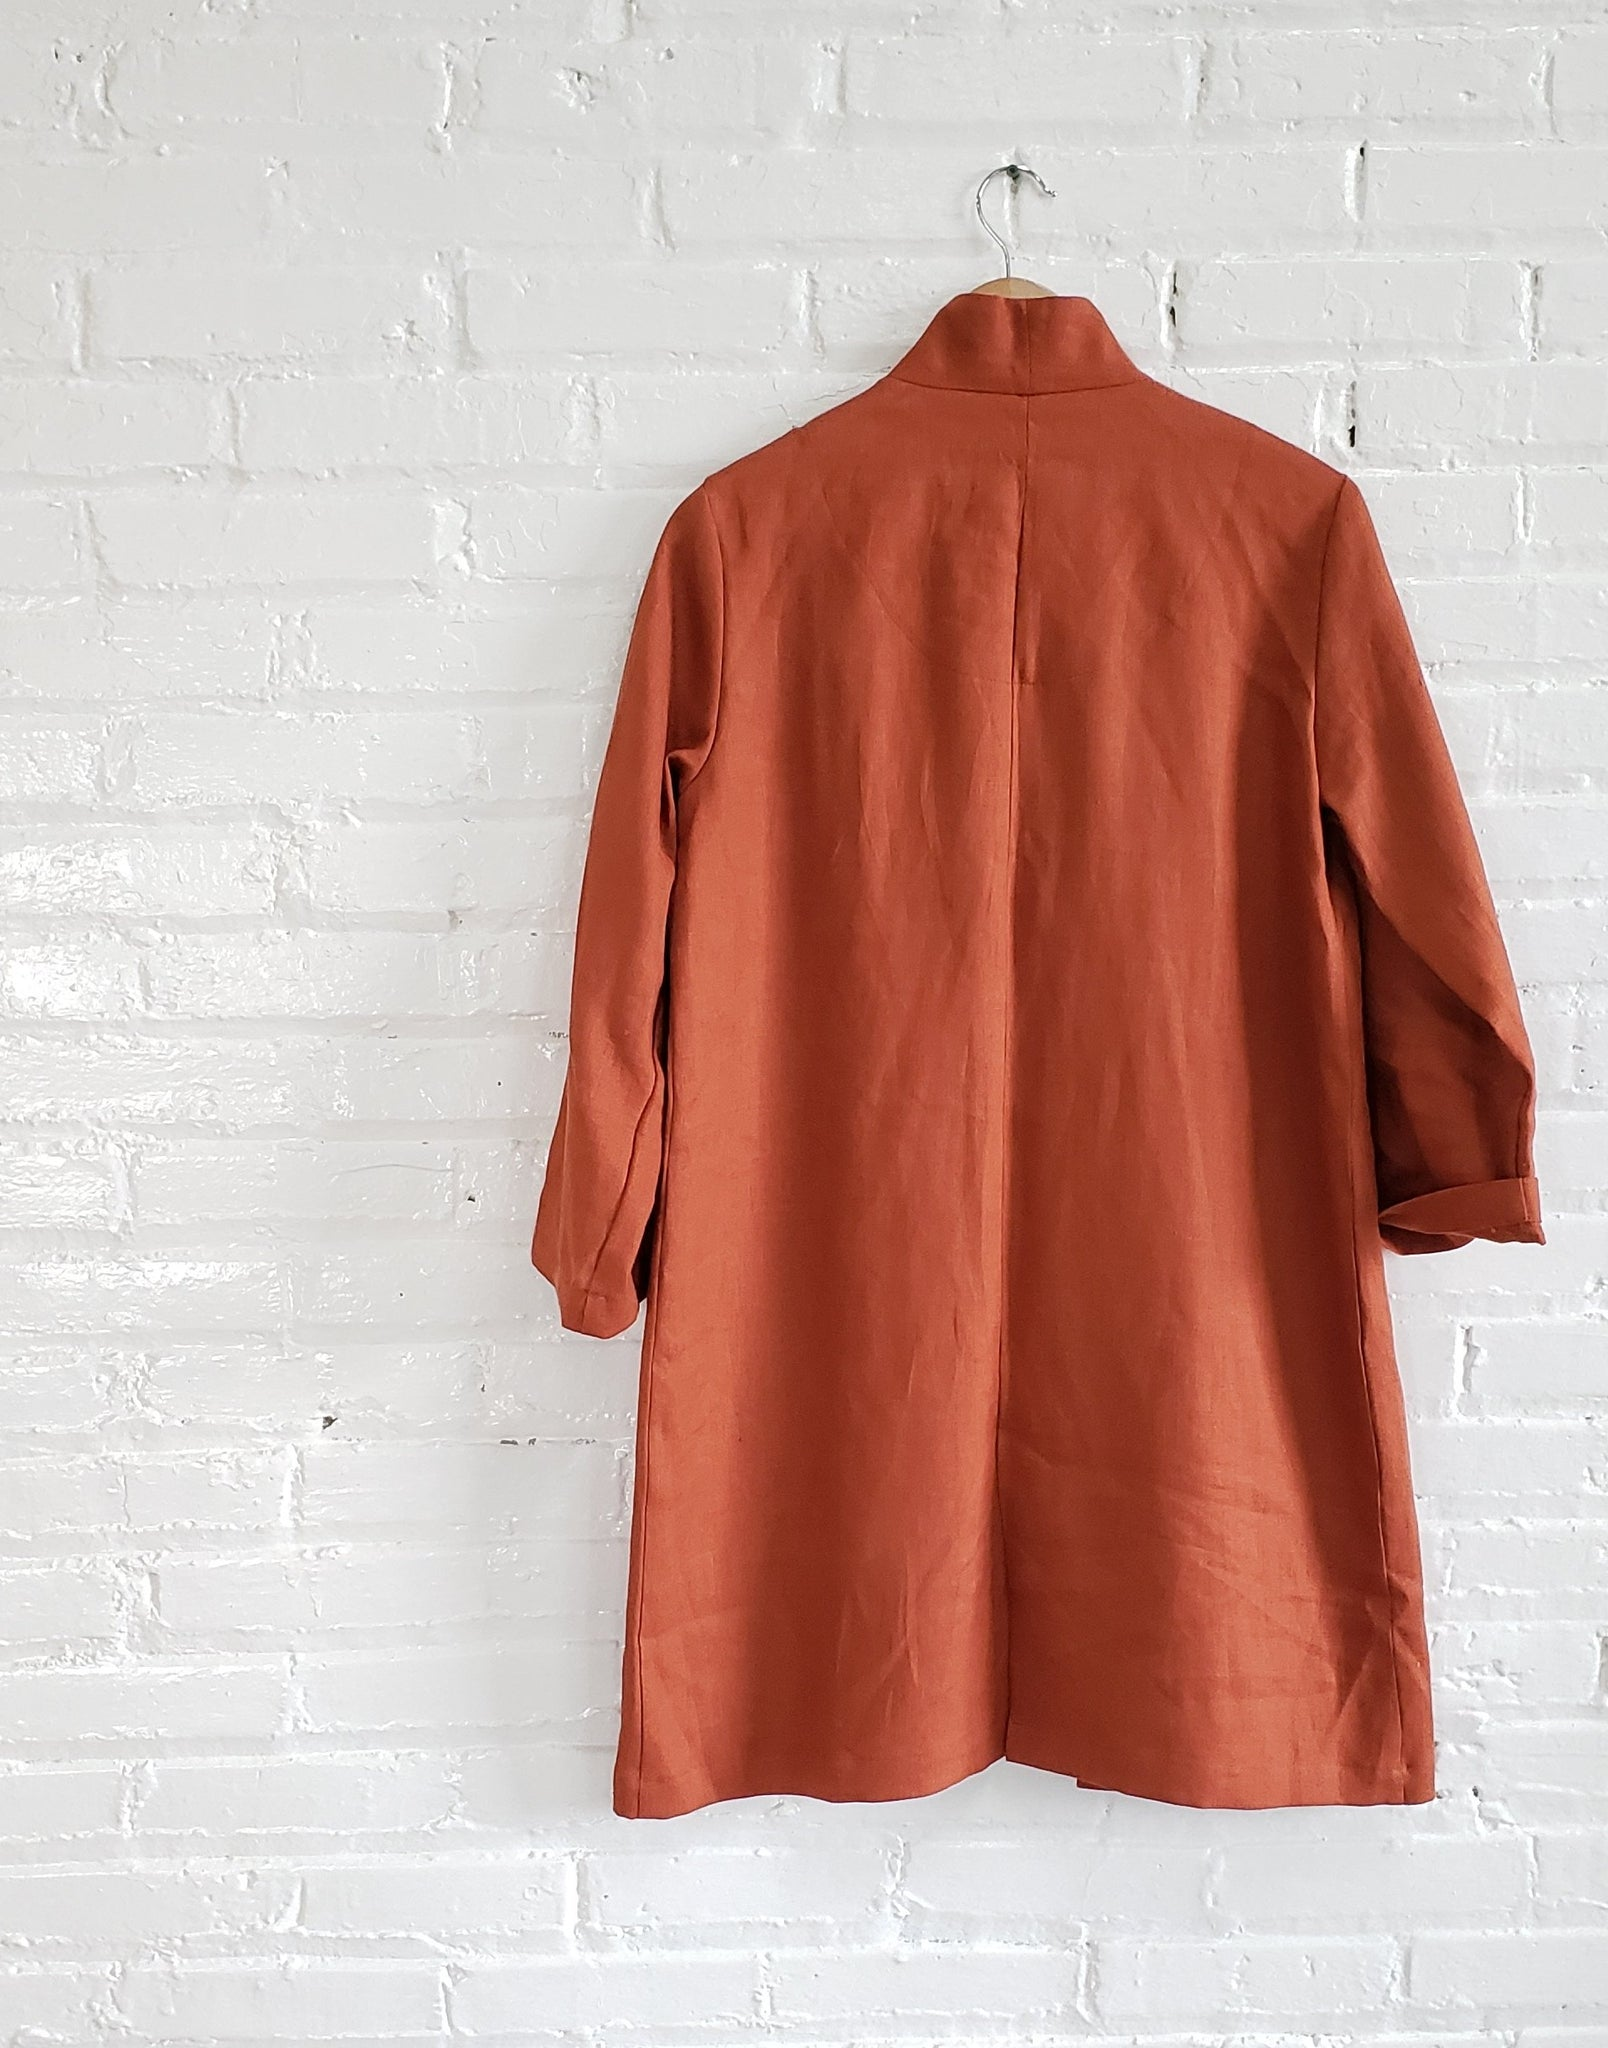 back view of a rust red orange linen labcoat hanging on a white brick wall